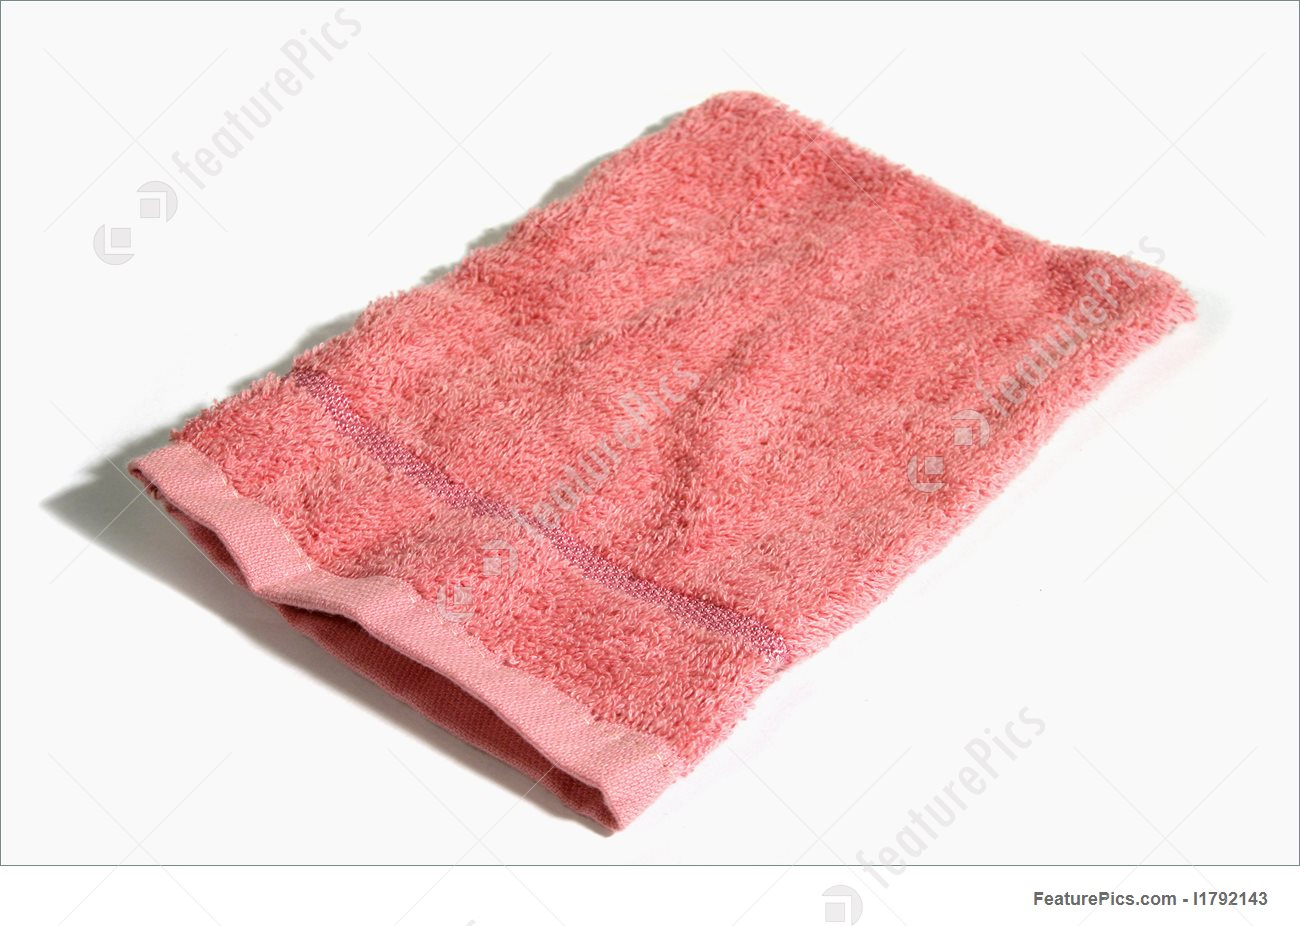 Washcloth and towel clipart clip free download Towel clipart face cloth - 89 transparent clip arts, images ... clip free download